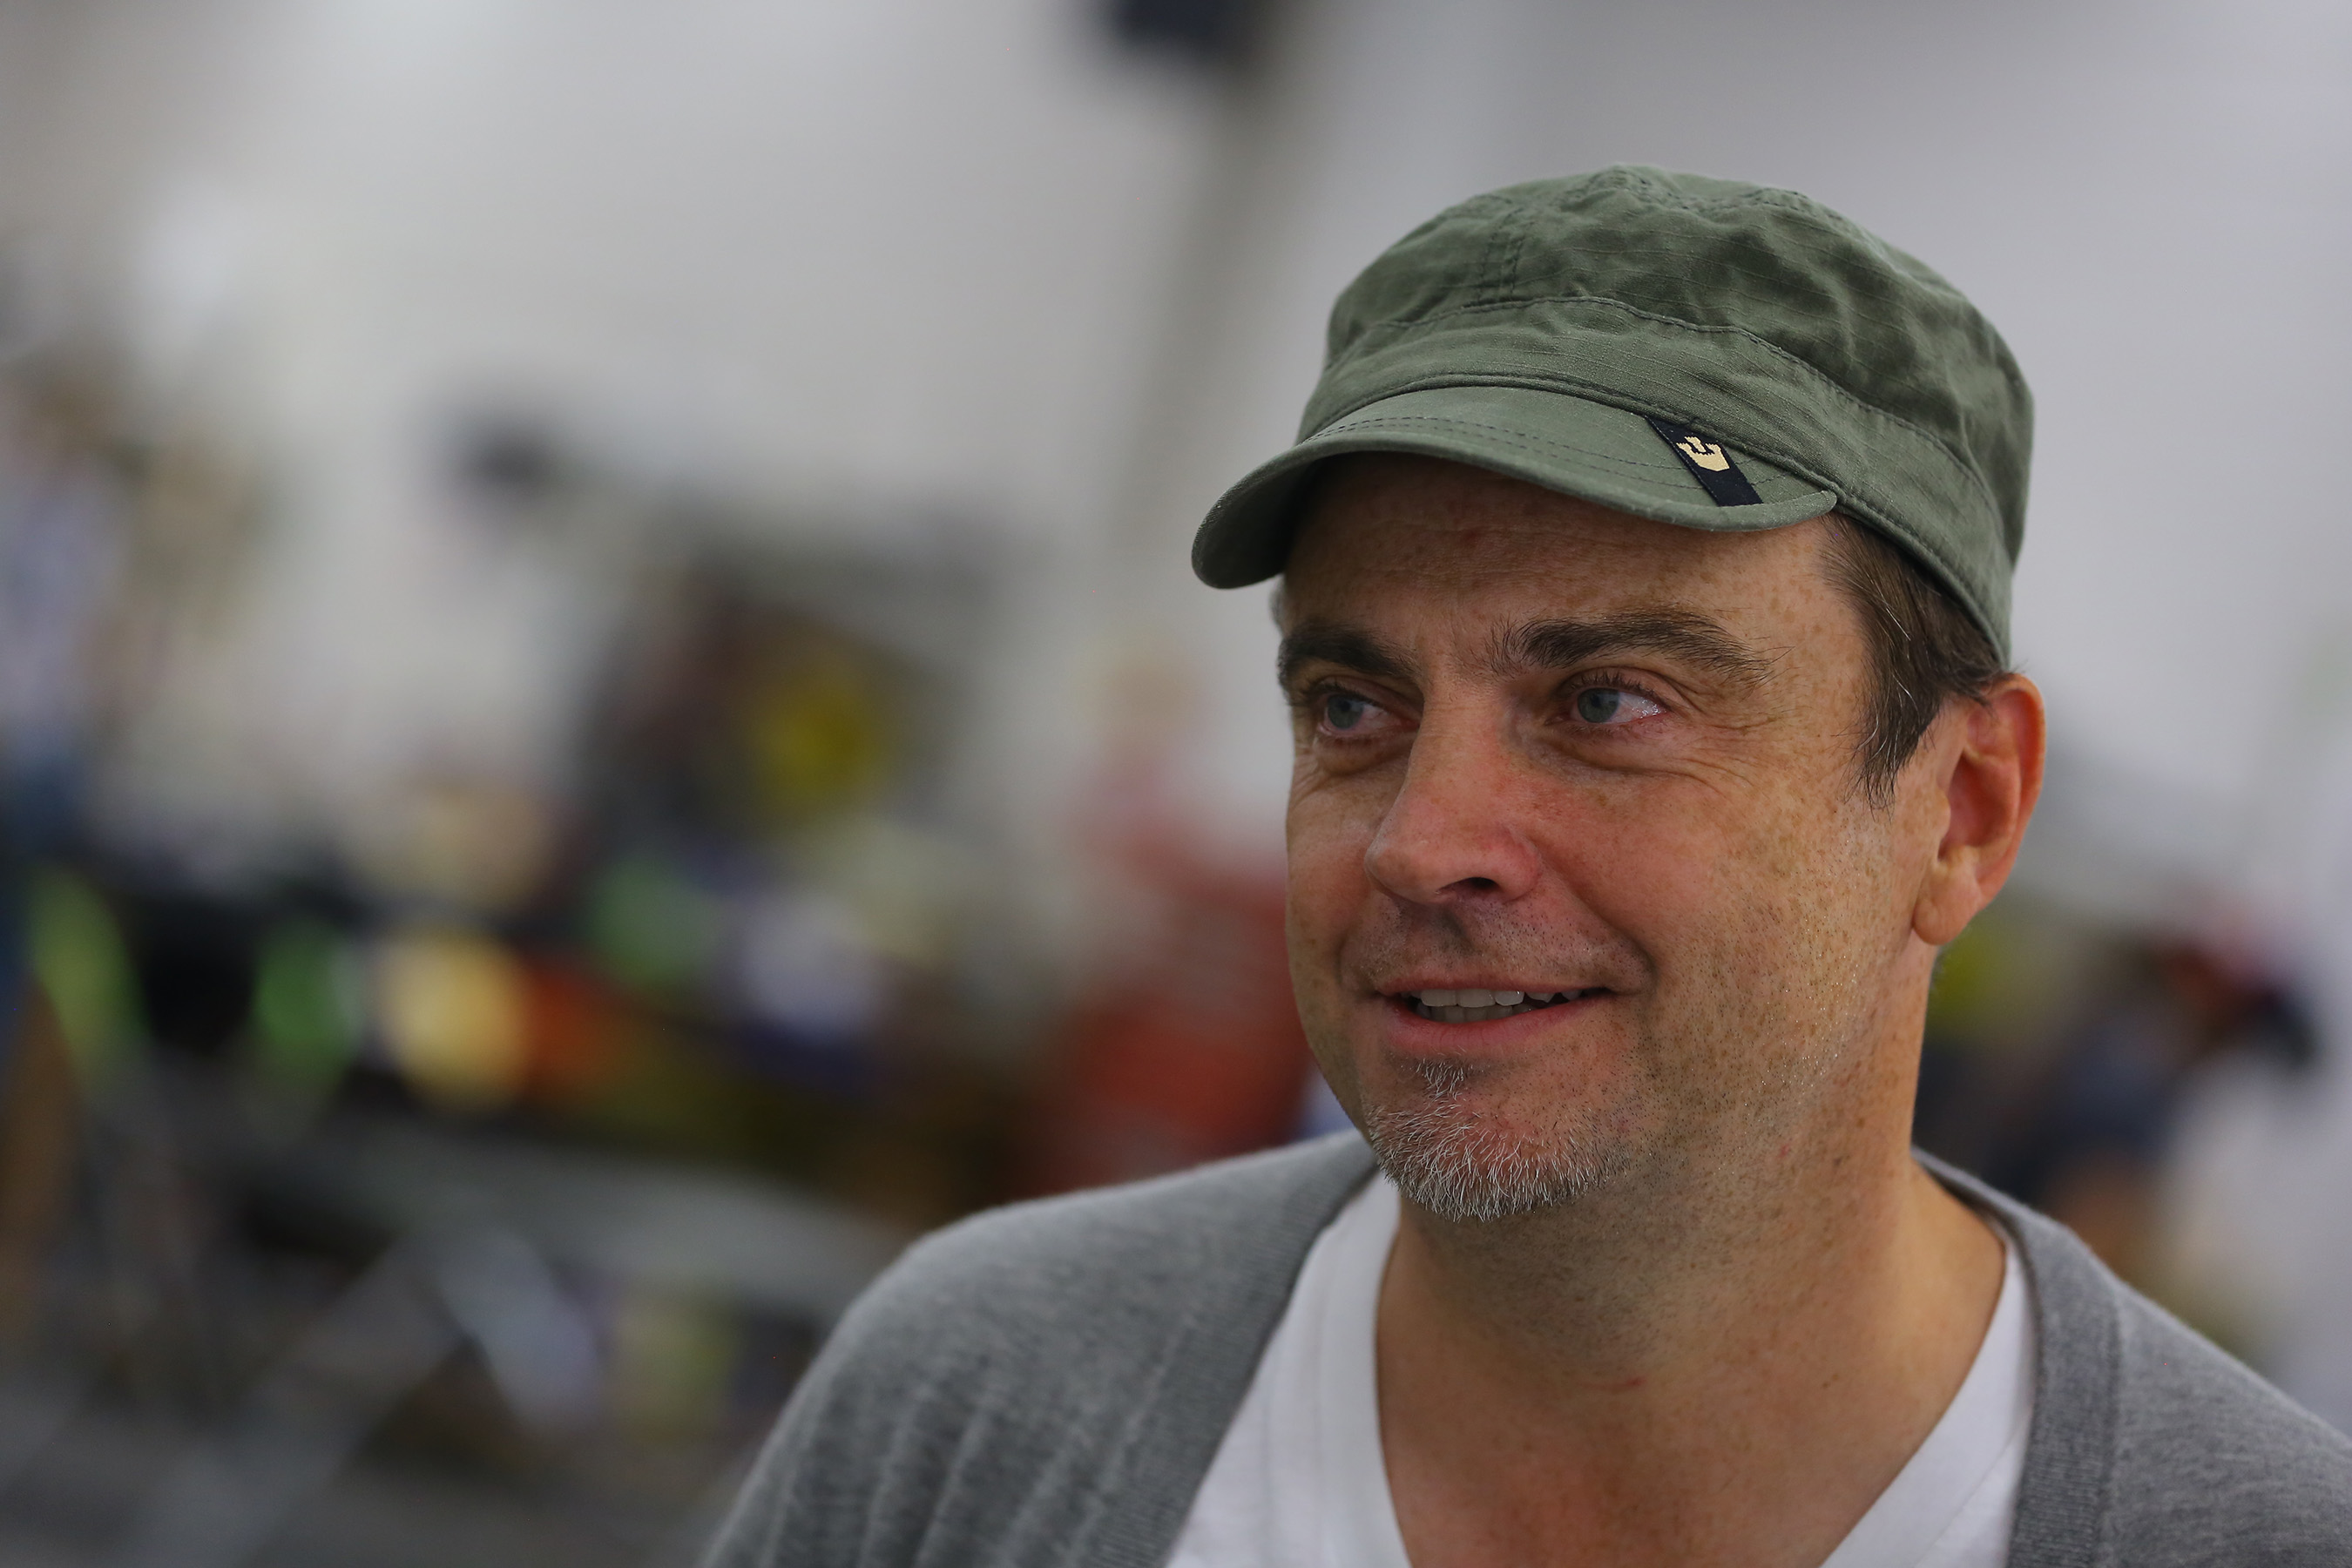 Rob Dickinson, creator and founder of Singer Vehicle Design